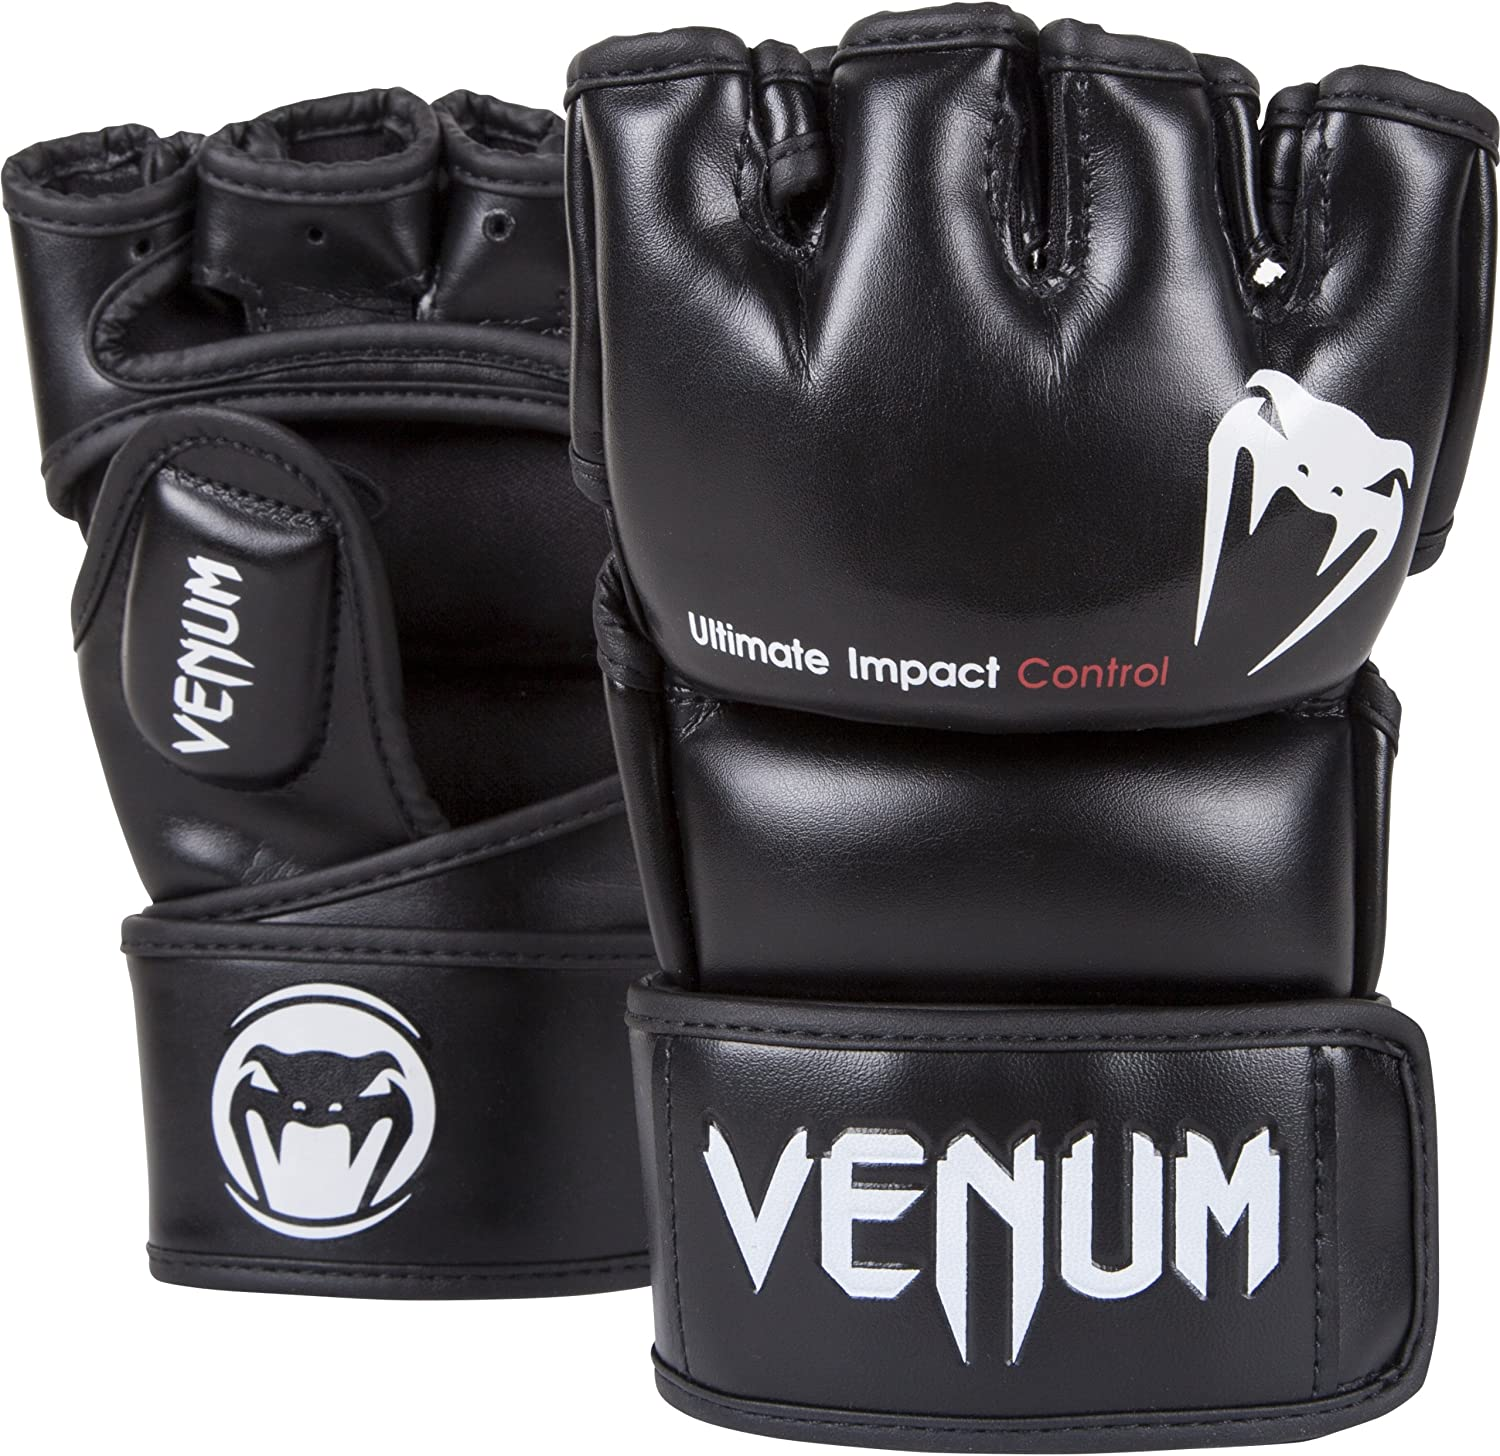 Phenom Grappling Gloves Mitts MMA UFC Fight Boxing Punch Bag Sparring Protector